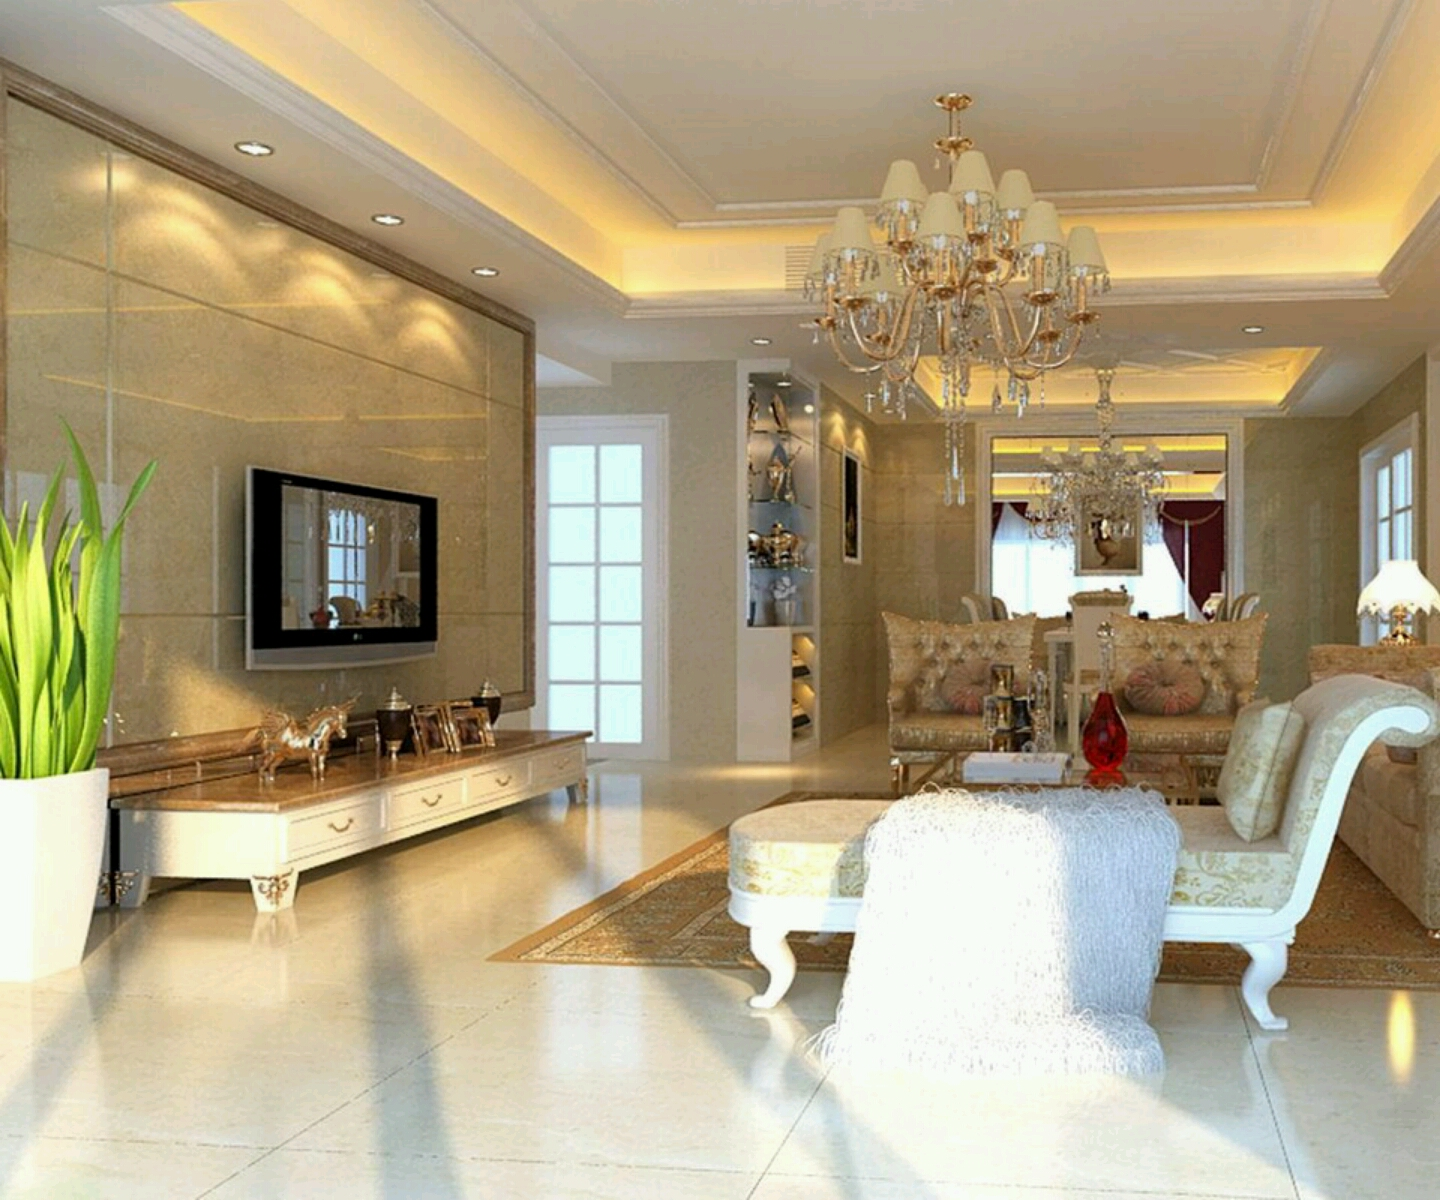 Home decor 2012 luxury homes interior decoration living for Home interior drawing room